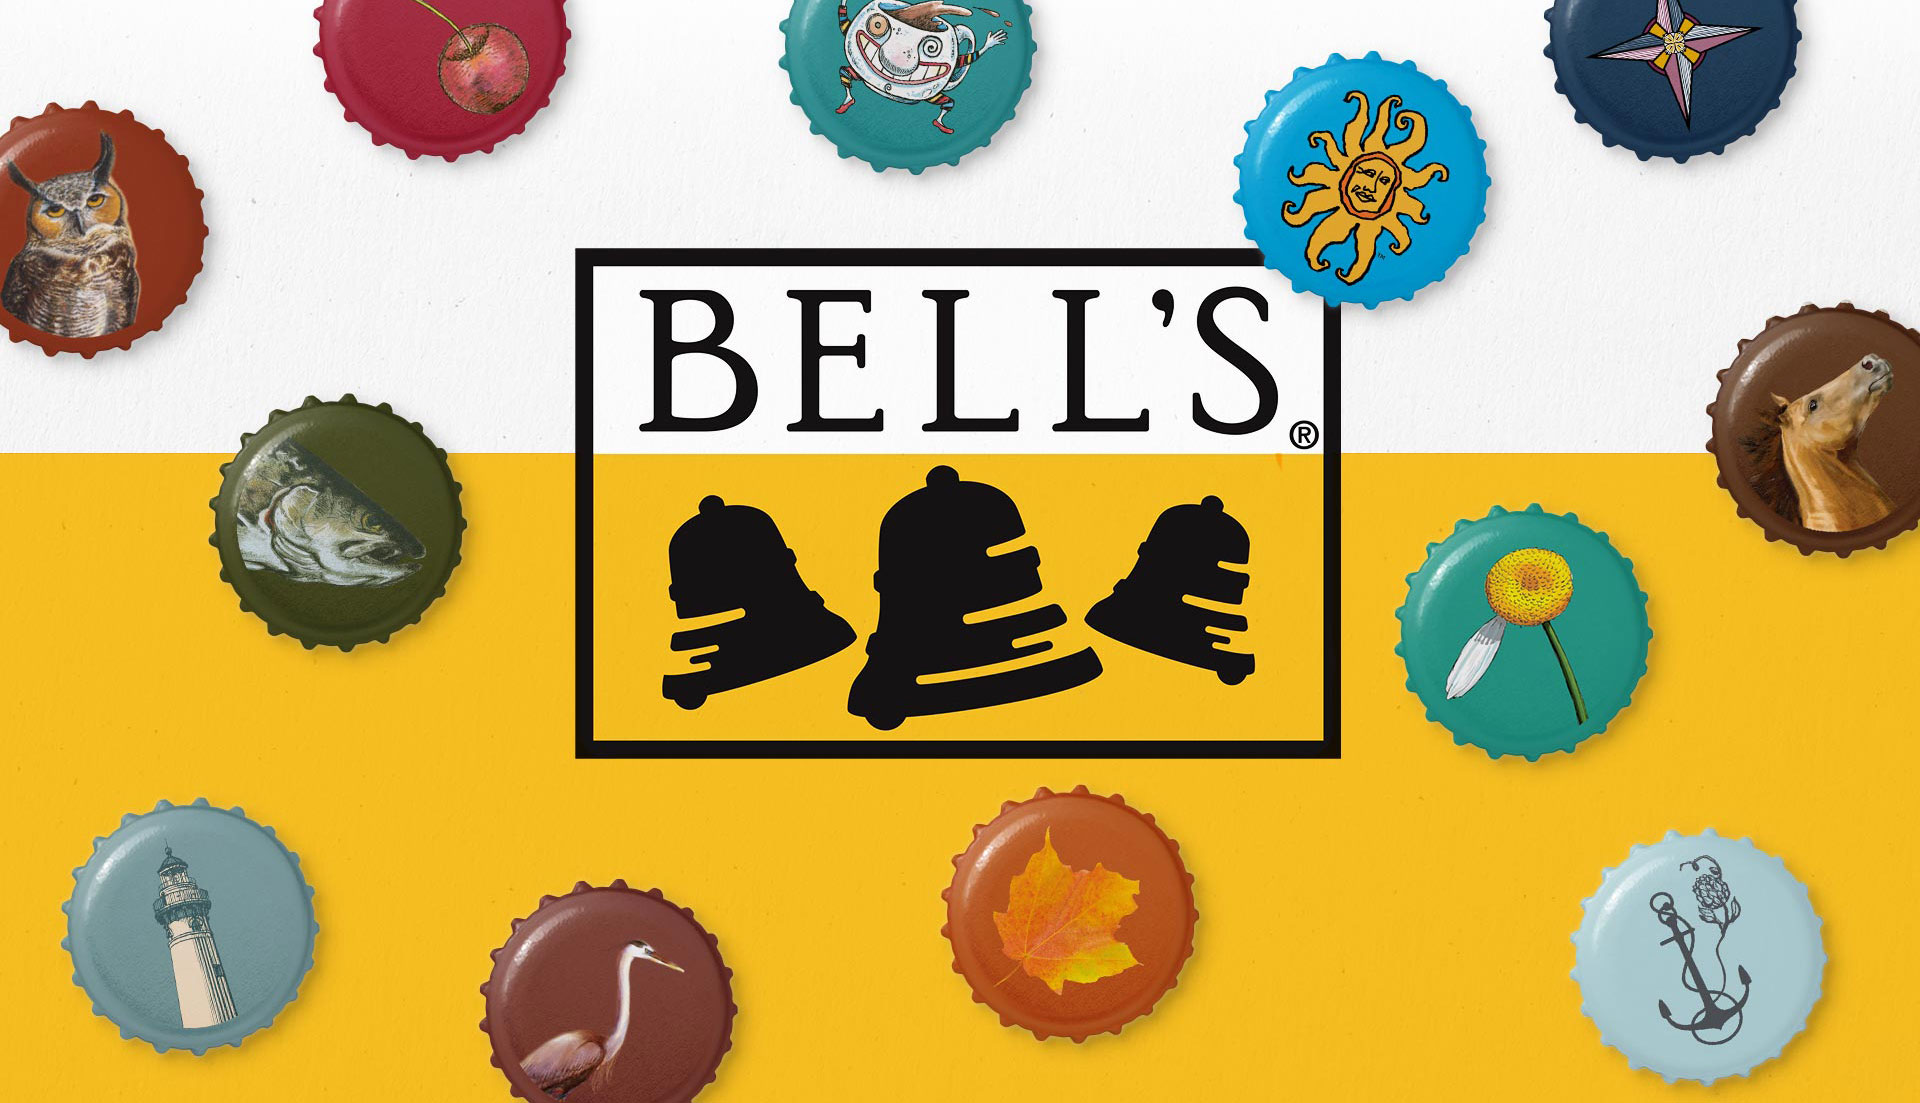 Bell's Brewery - Brand Identity and Bottle Caps